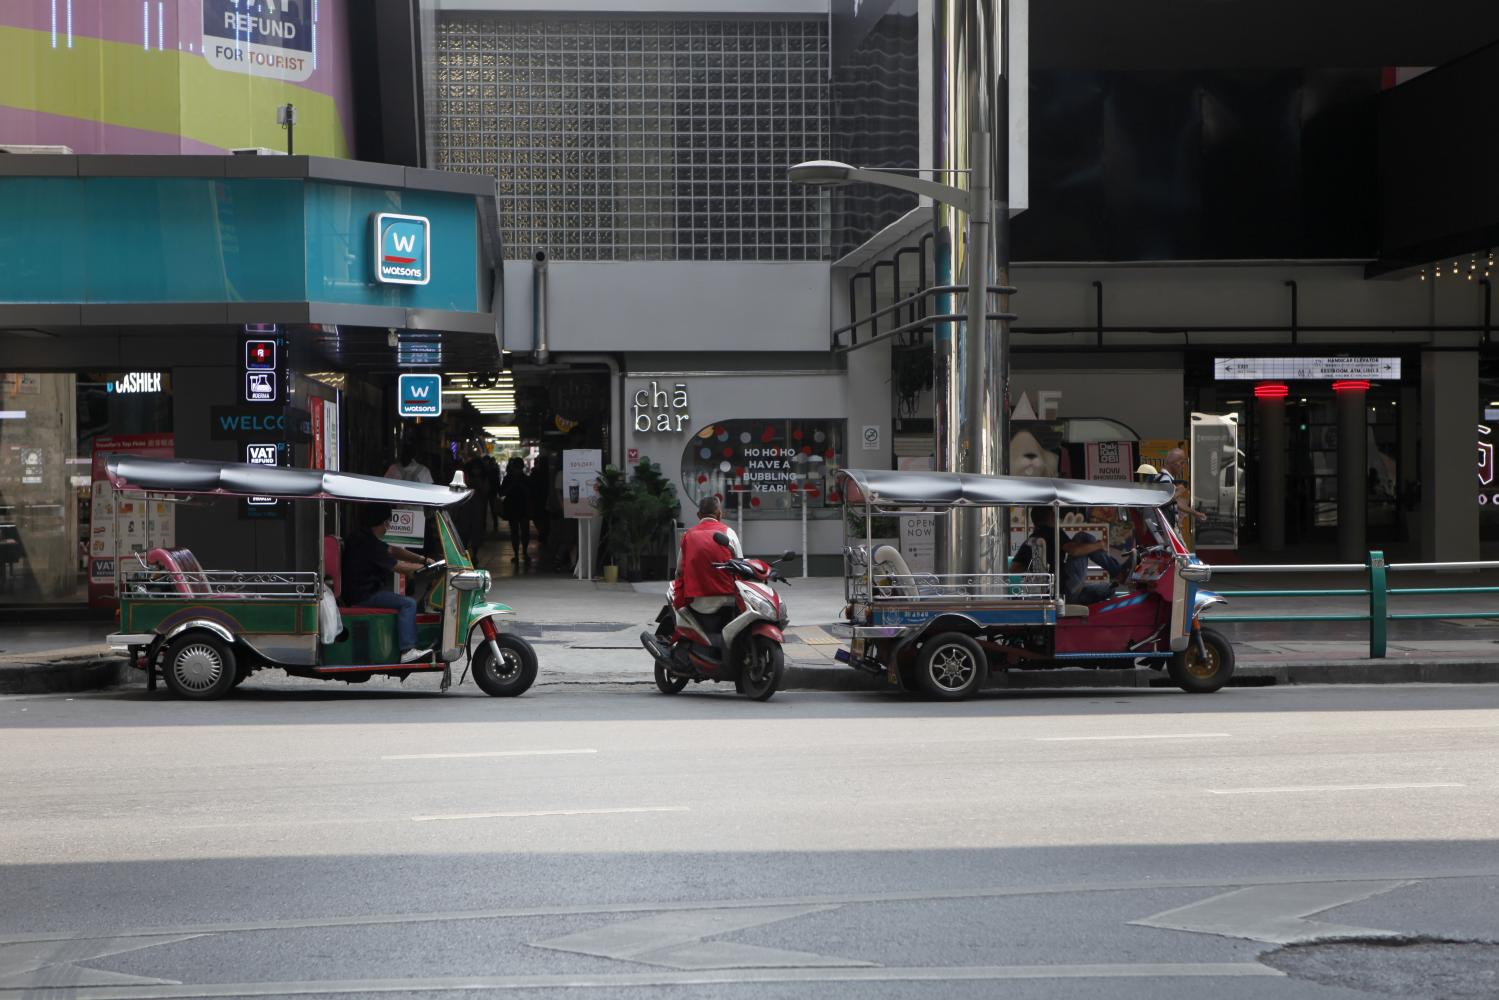 Siam Square in Bangkok is nearly empty as the Thai economy's 2020 prospects grow bleaker.